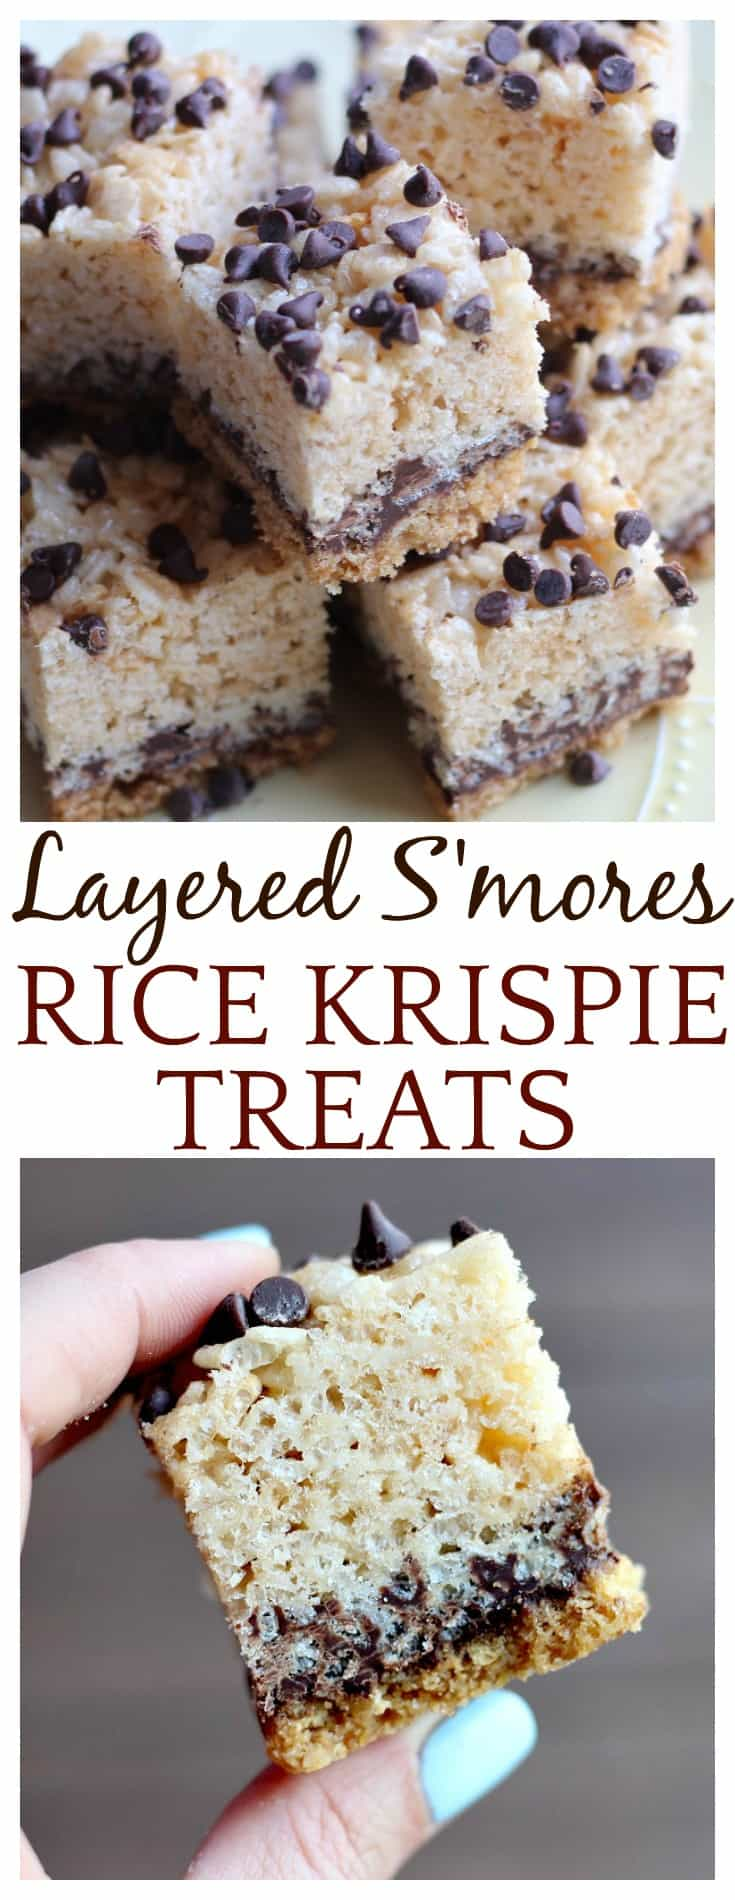 These Layered S'mores Rice Krispie Treats can be enjoyed anytime of the year! They can be made ahead of time, and are easy to bring along on all of your summer outings!